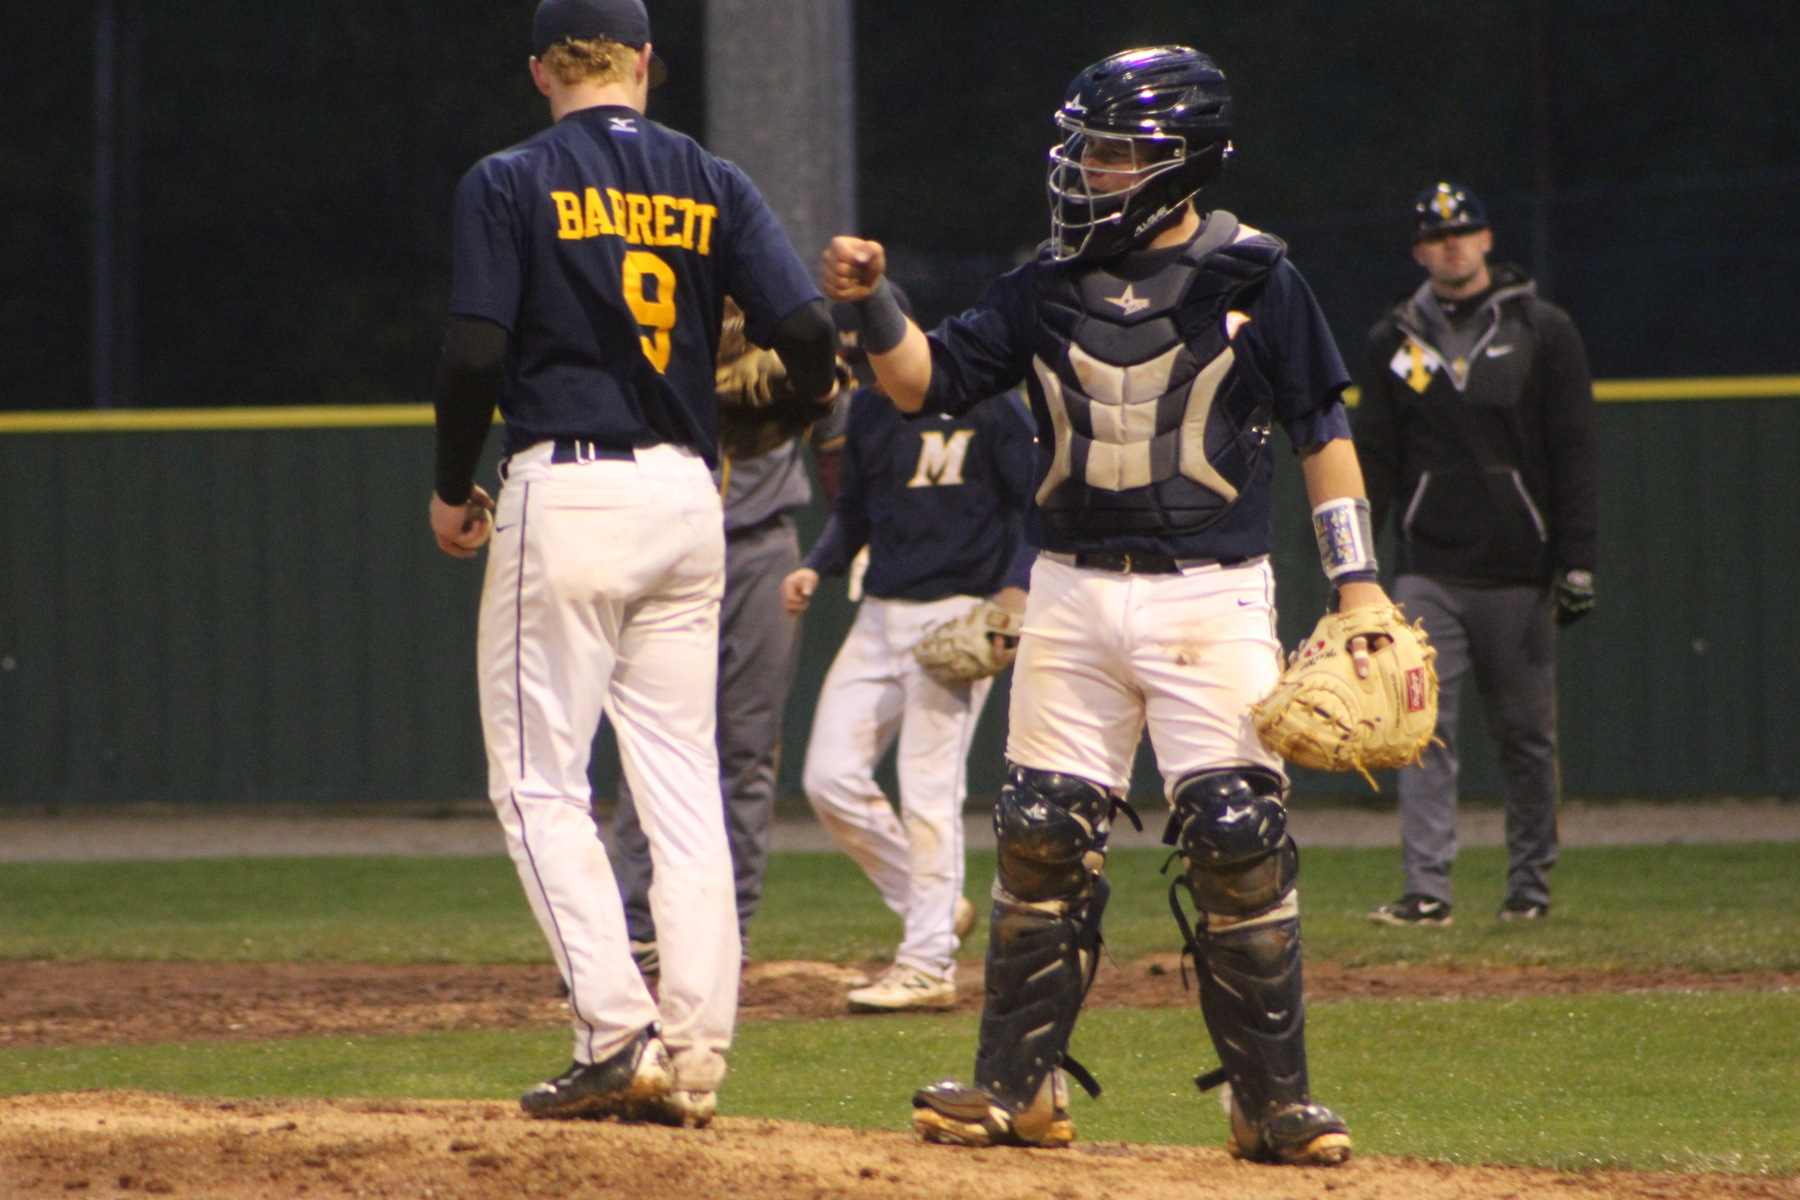 MCC baseball swept Indian Hills CC in Centerville on Friday night